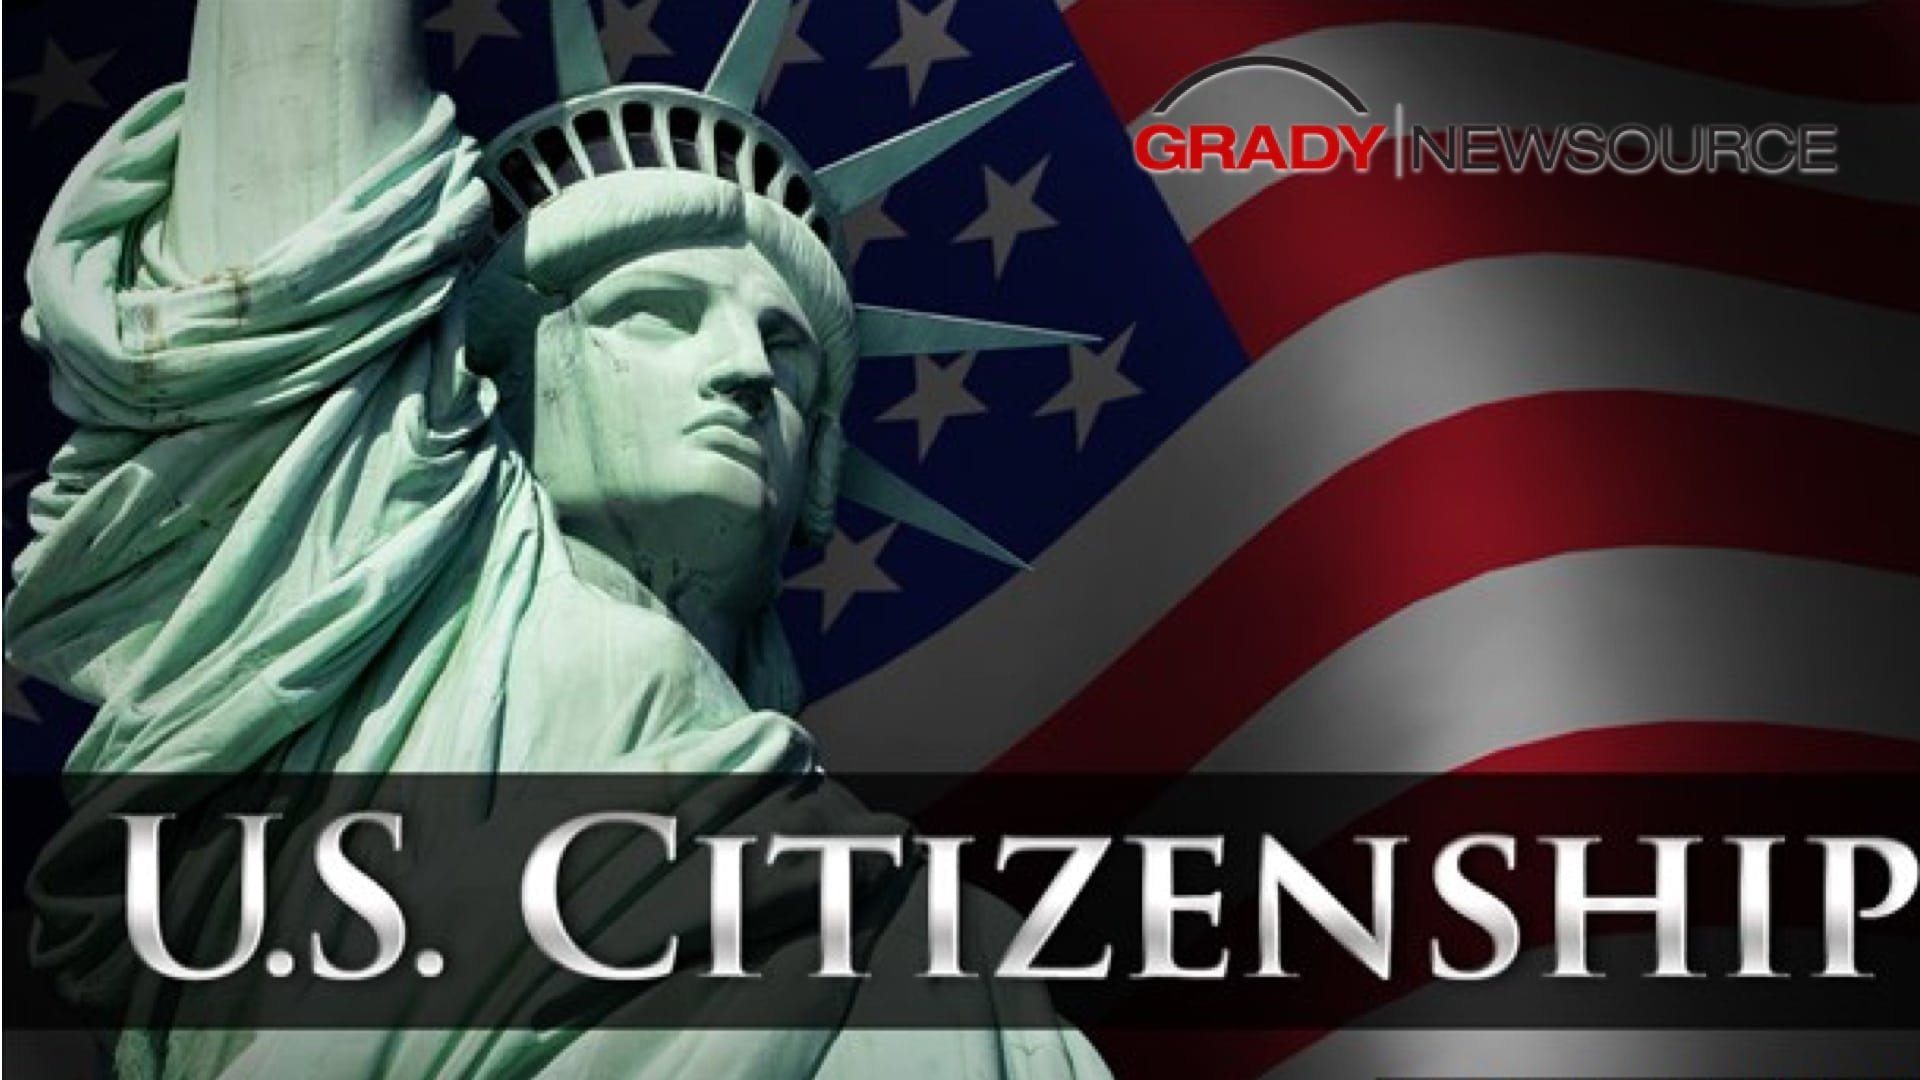 naturalized citizens For example, in certain circumstances a child who is a lawful permanent resident automatically gains us citizenship when a parent becomes a naturalized us citizen to gain derivative citizenship, an individual need not complete a government application - it just automatically happens.